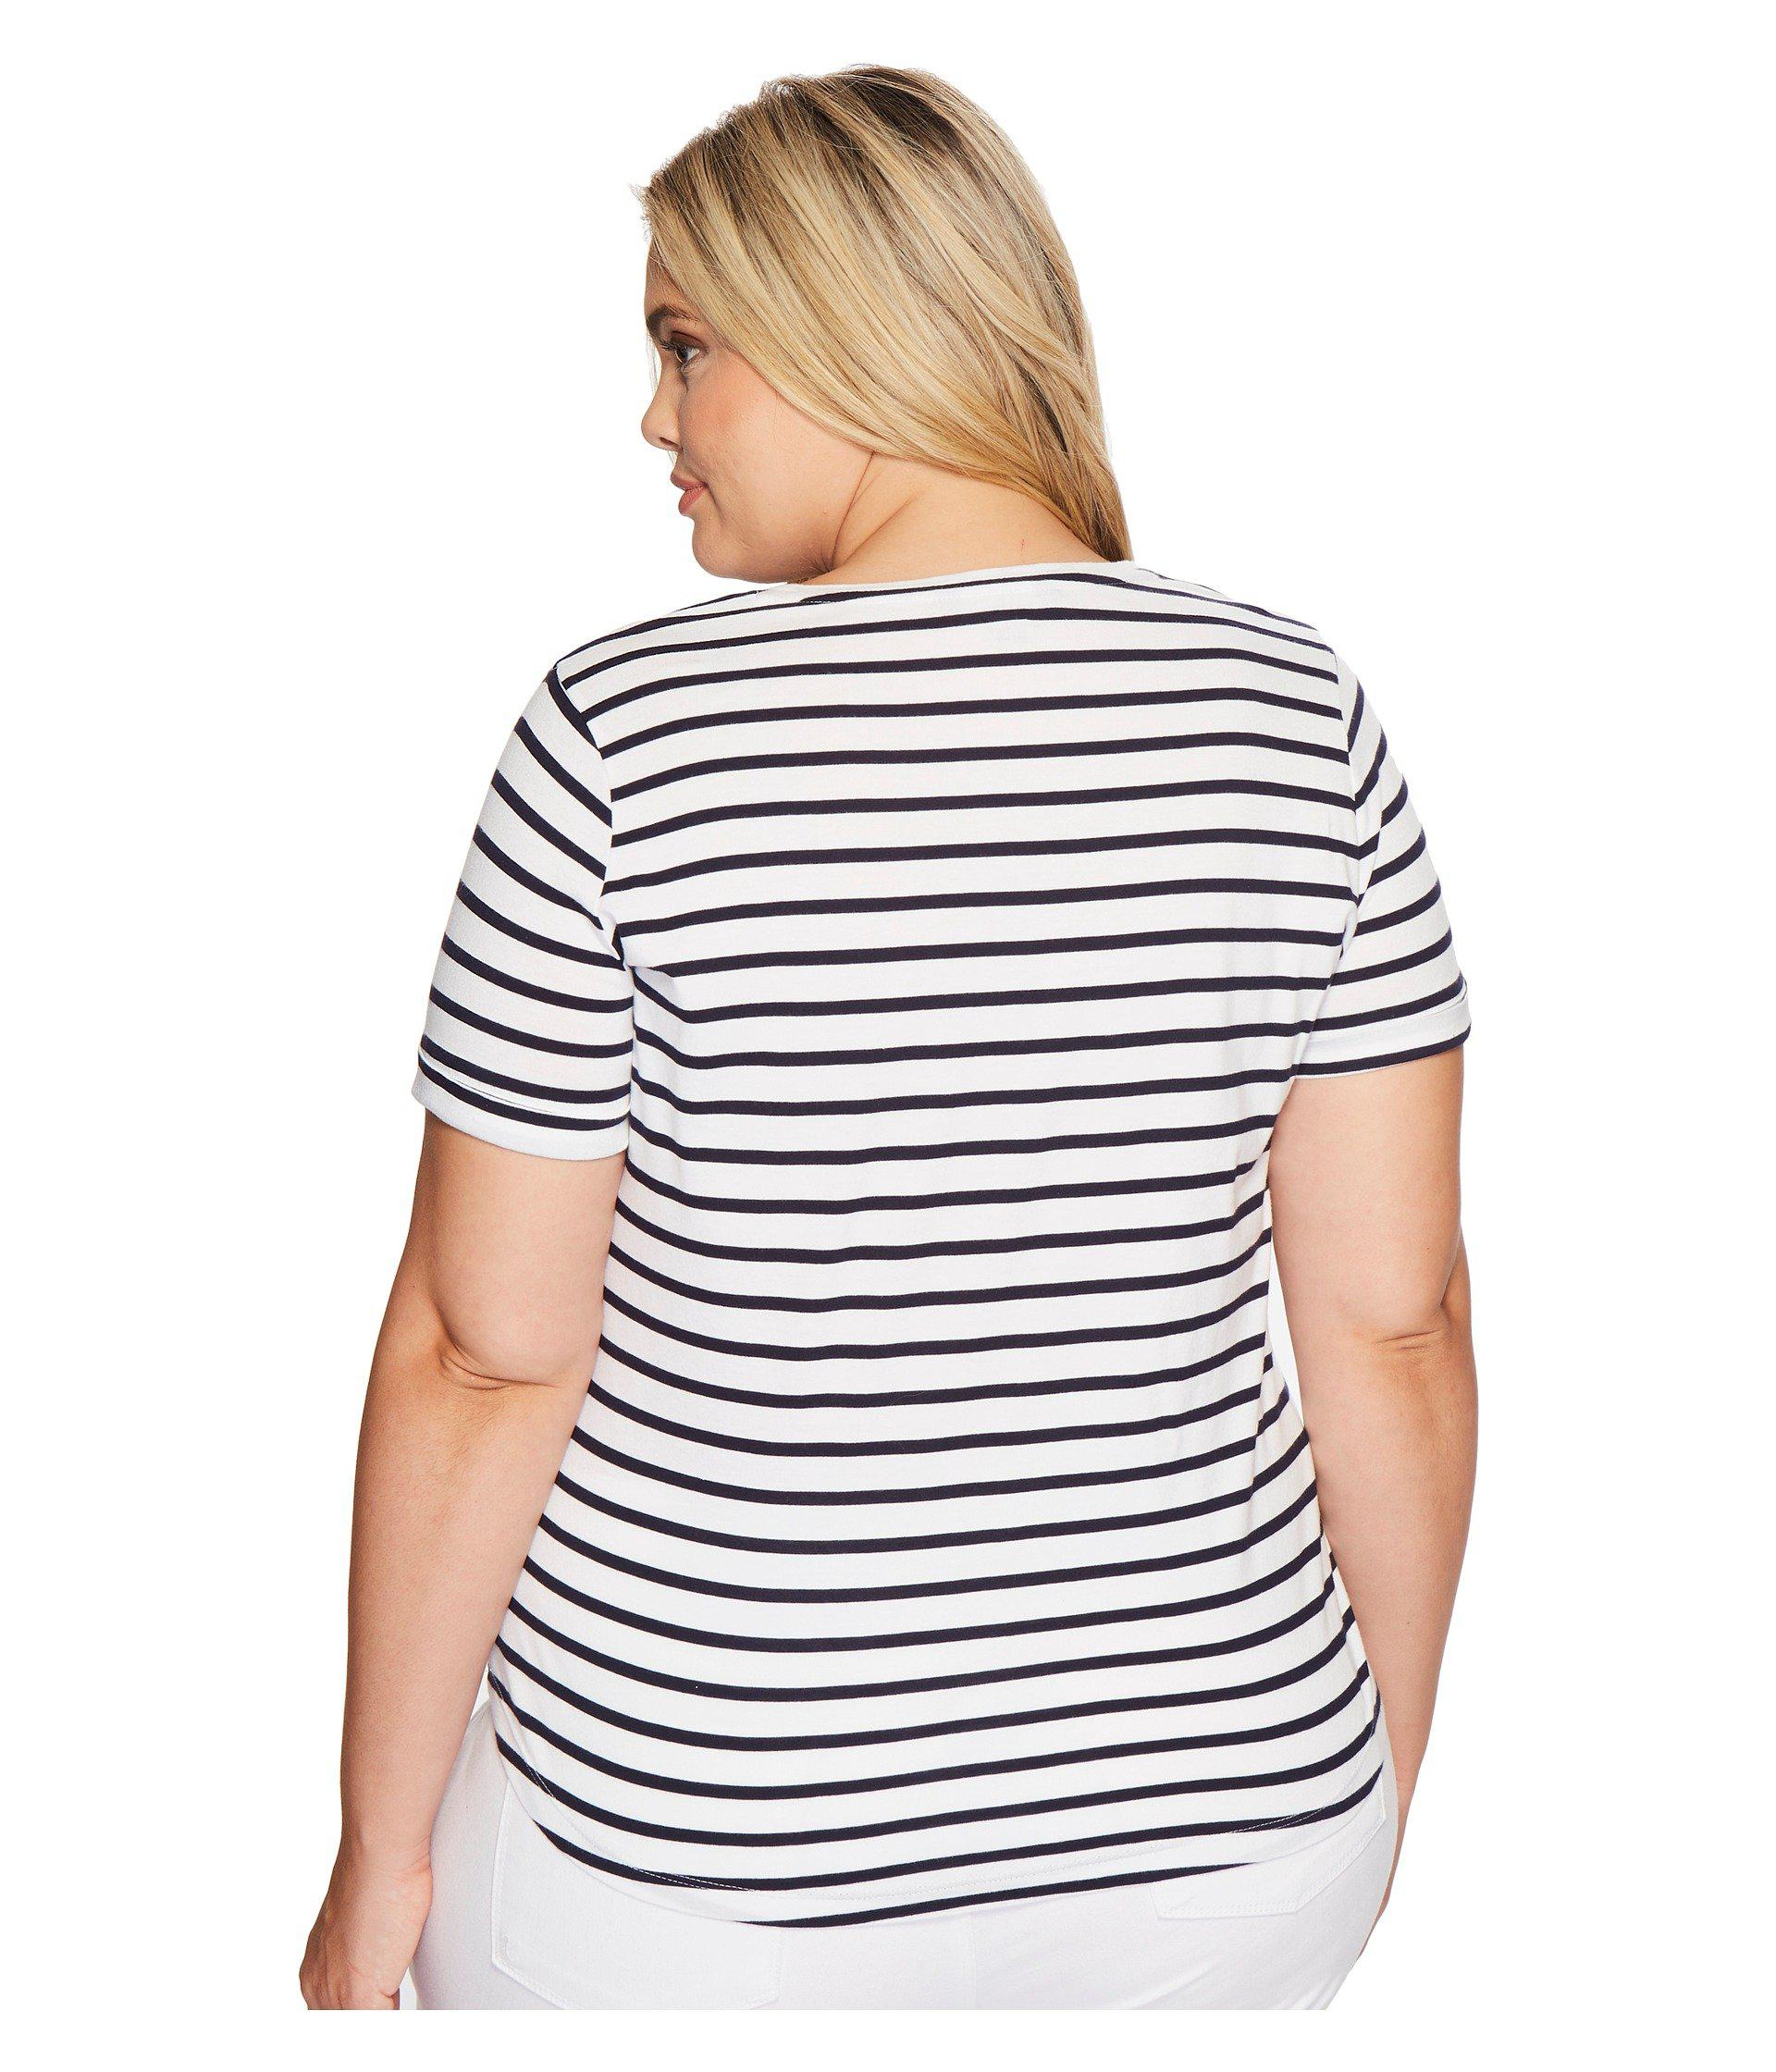 5214f85d84630 Lyst - Lauren by Ralph Lauren Plus Size Bullion-patch Striped T ...